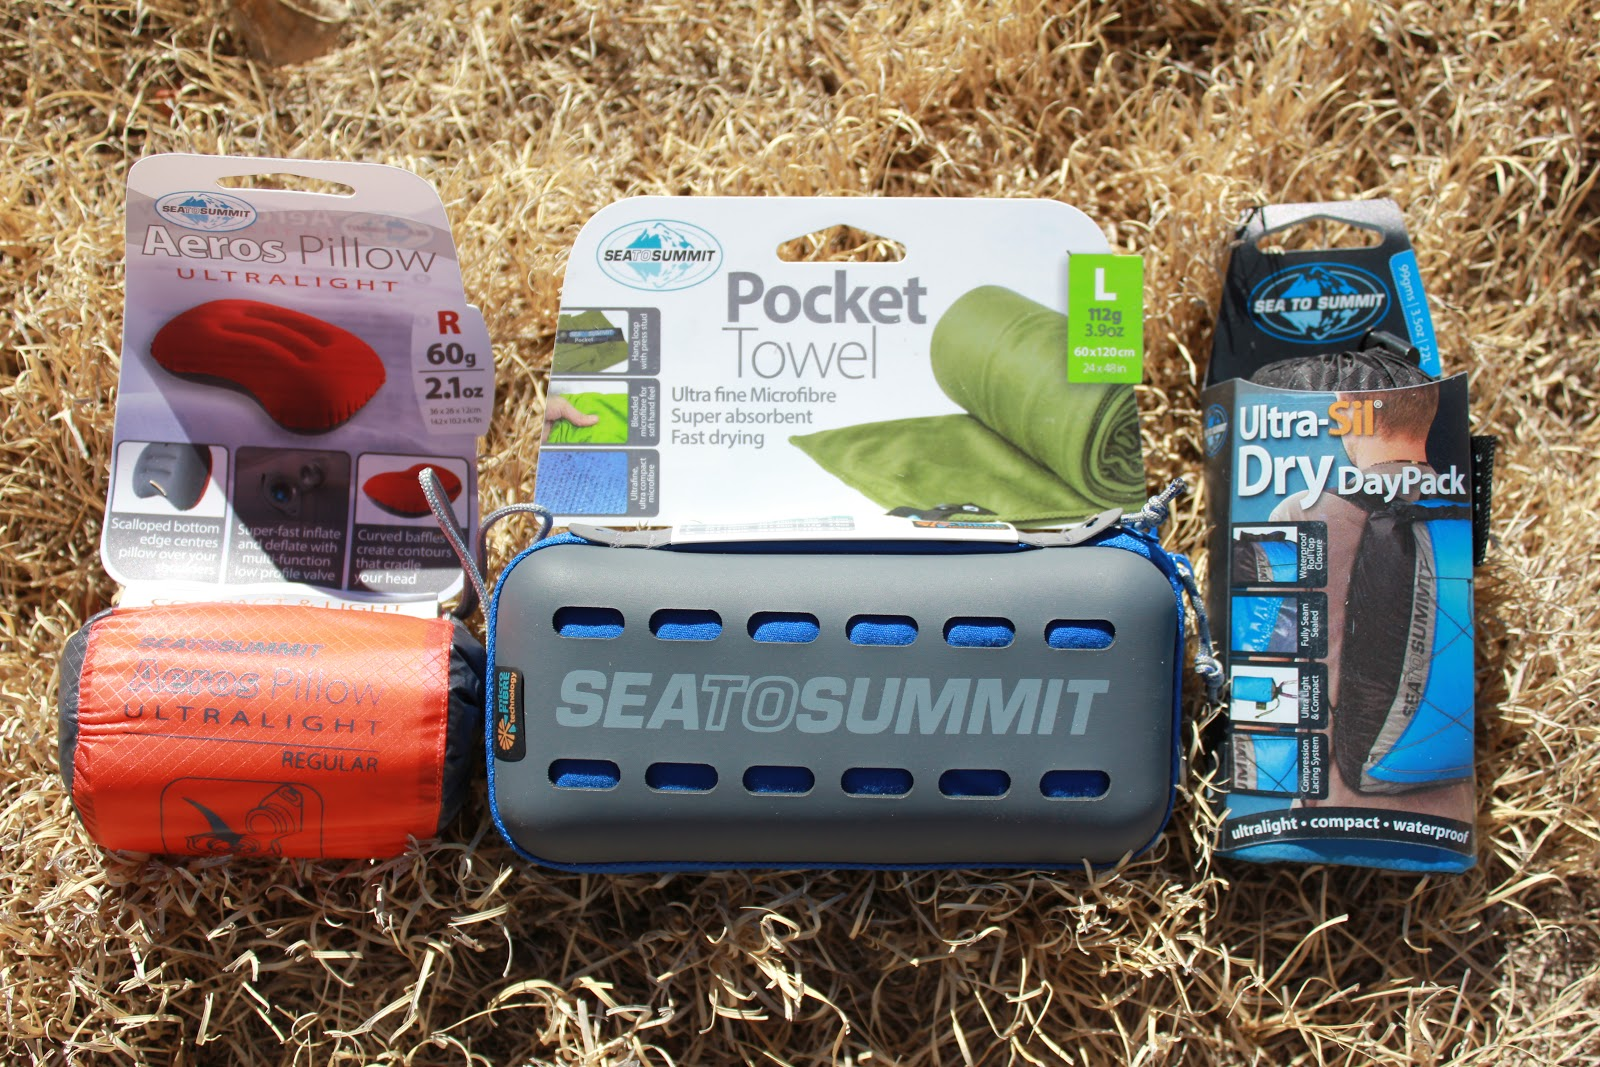 Sea To Summit's Travelling Light Gear Brings Efficiency To Travel